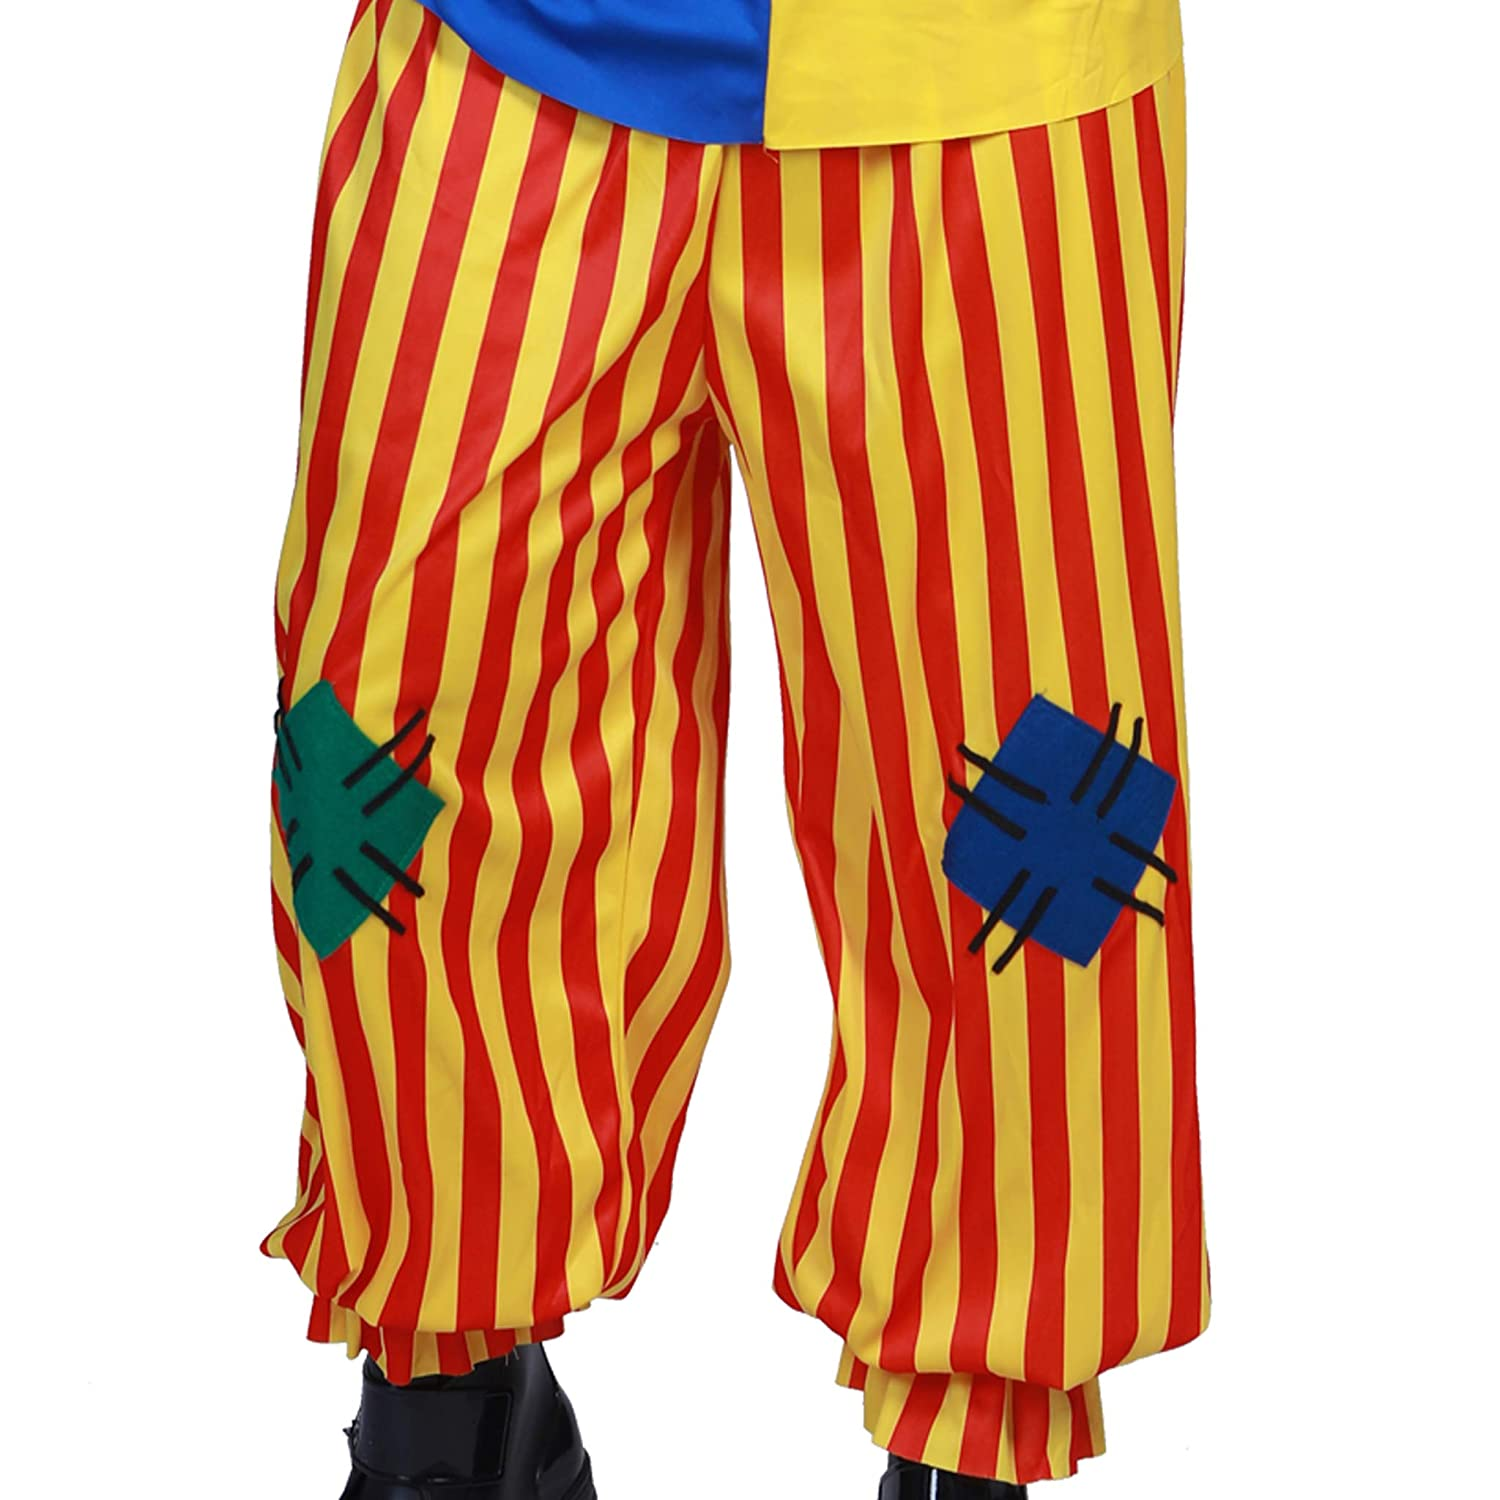 9f427a4ccd9e Amazon.com: Adult Unisex Clown Costume Colorful Patchwork Circus Overalls  Joker Role Play: Clothing